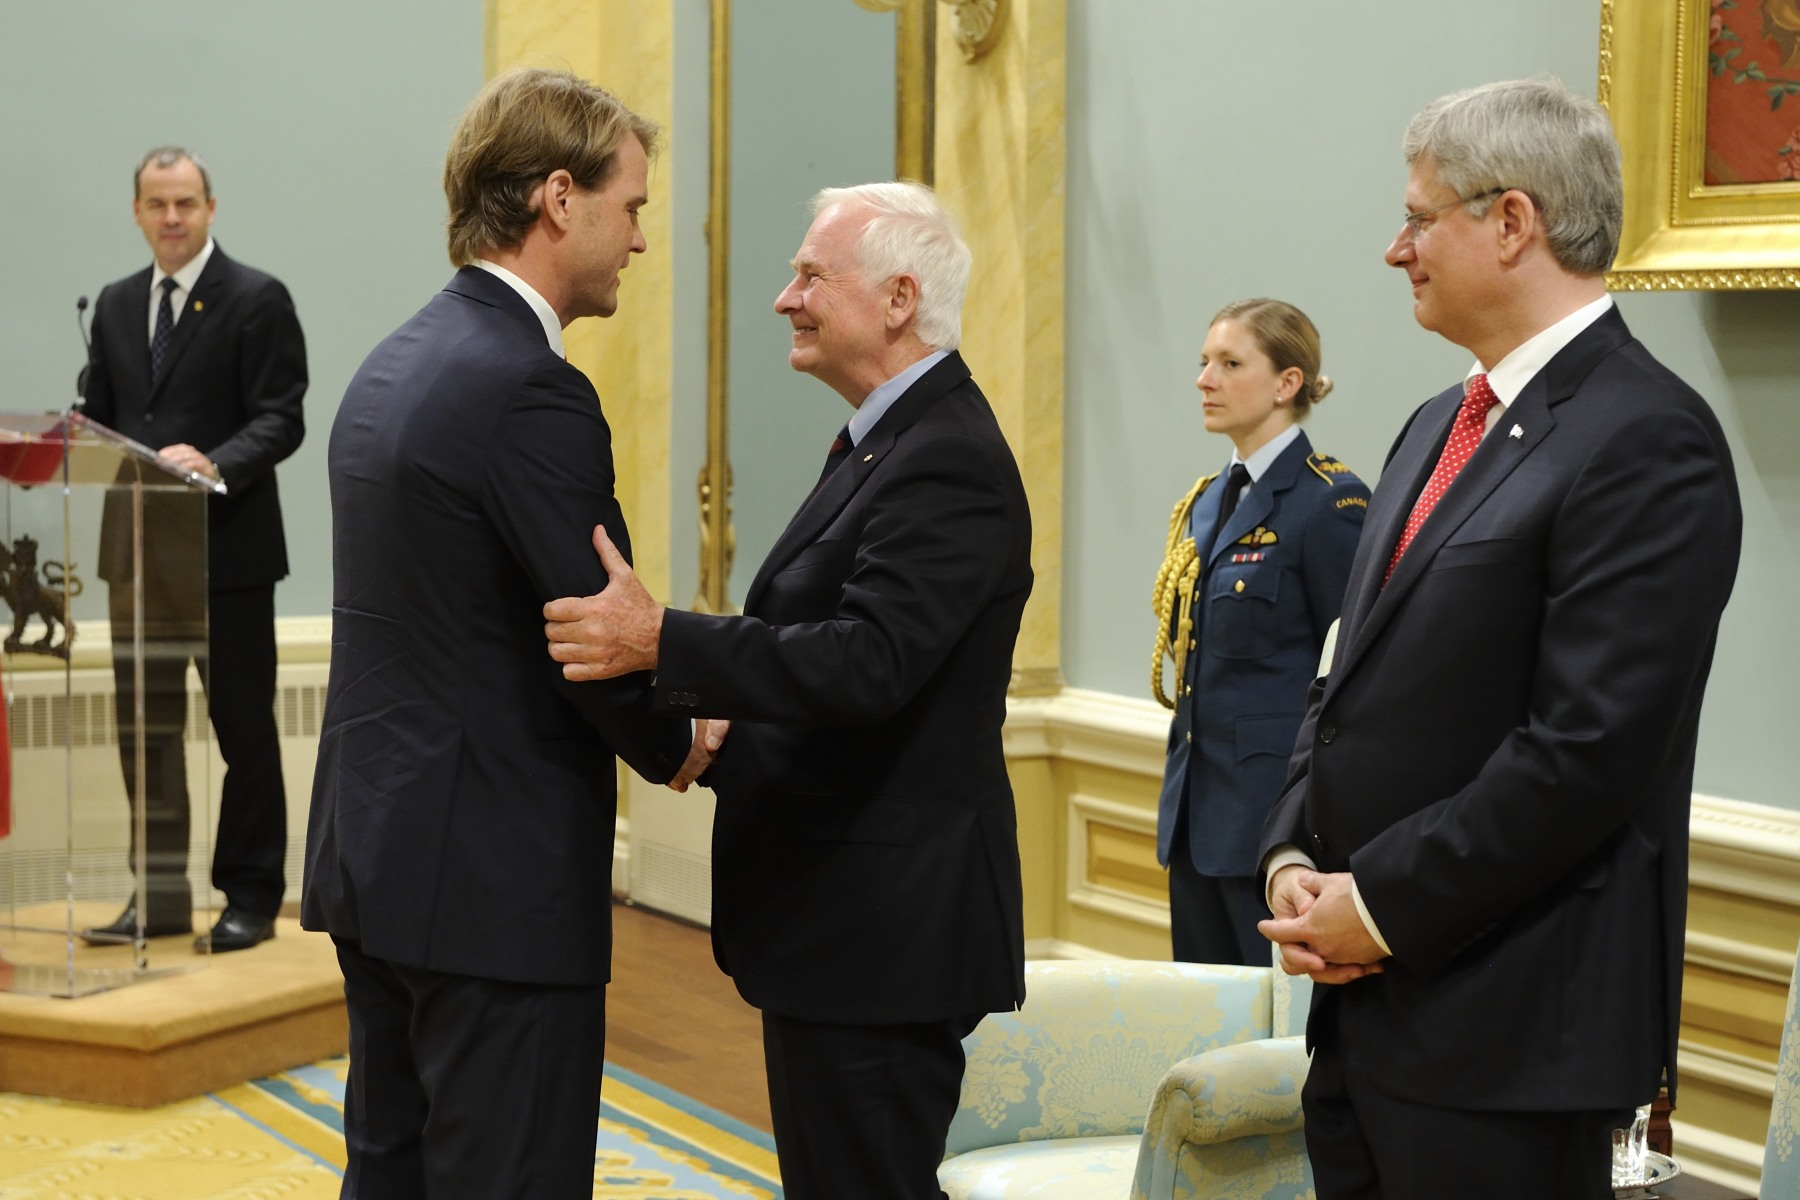 All were congratulated by both His Excellency the Right Honourable David Johnston, Governor General of Canada, and the Right Honourable Stephen Harper, Prime Minister of Canada.